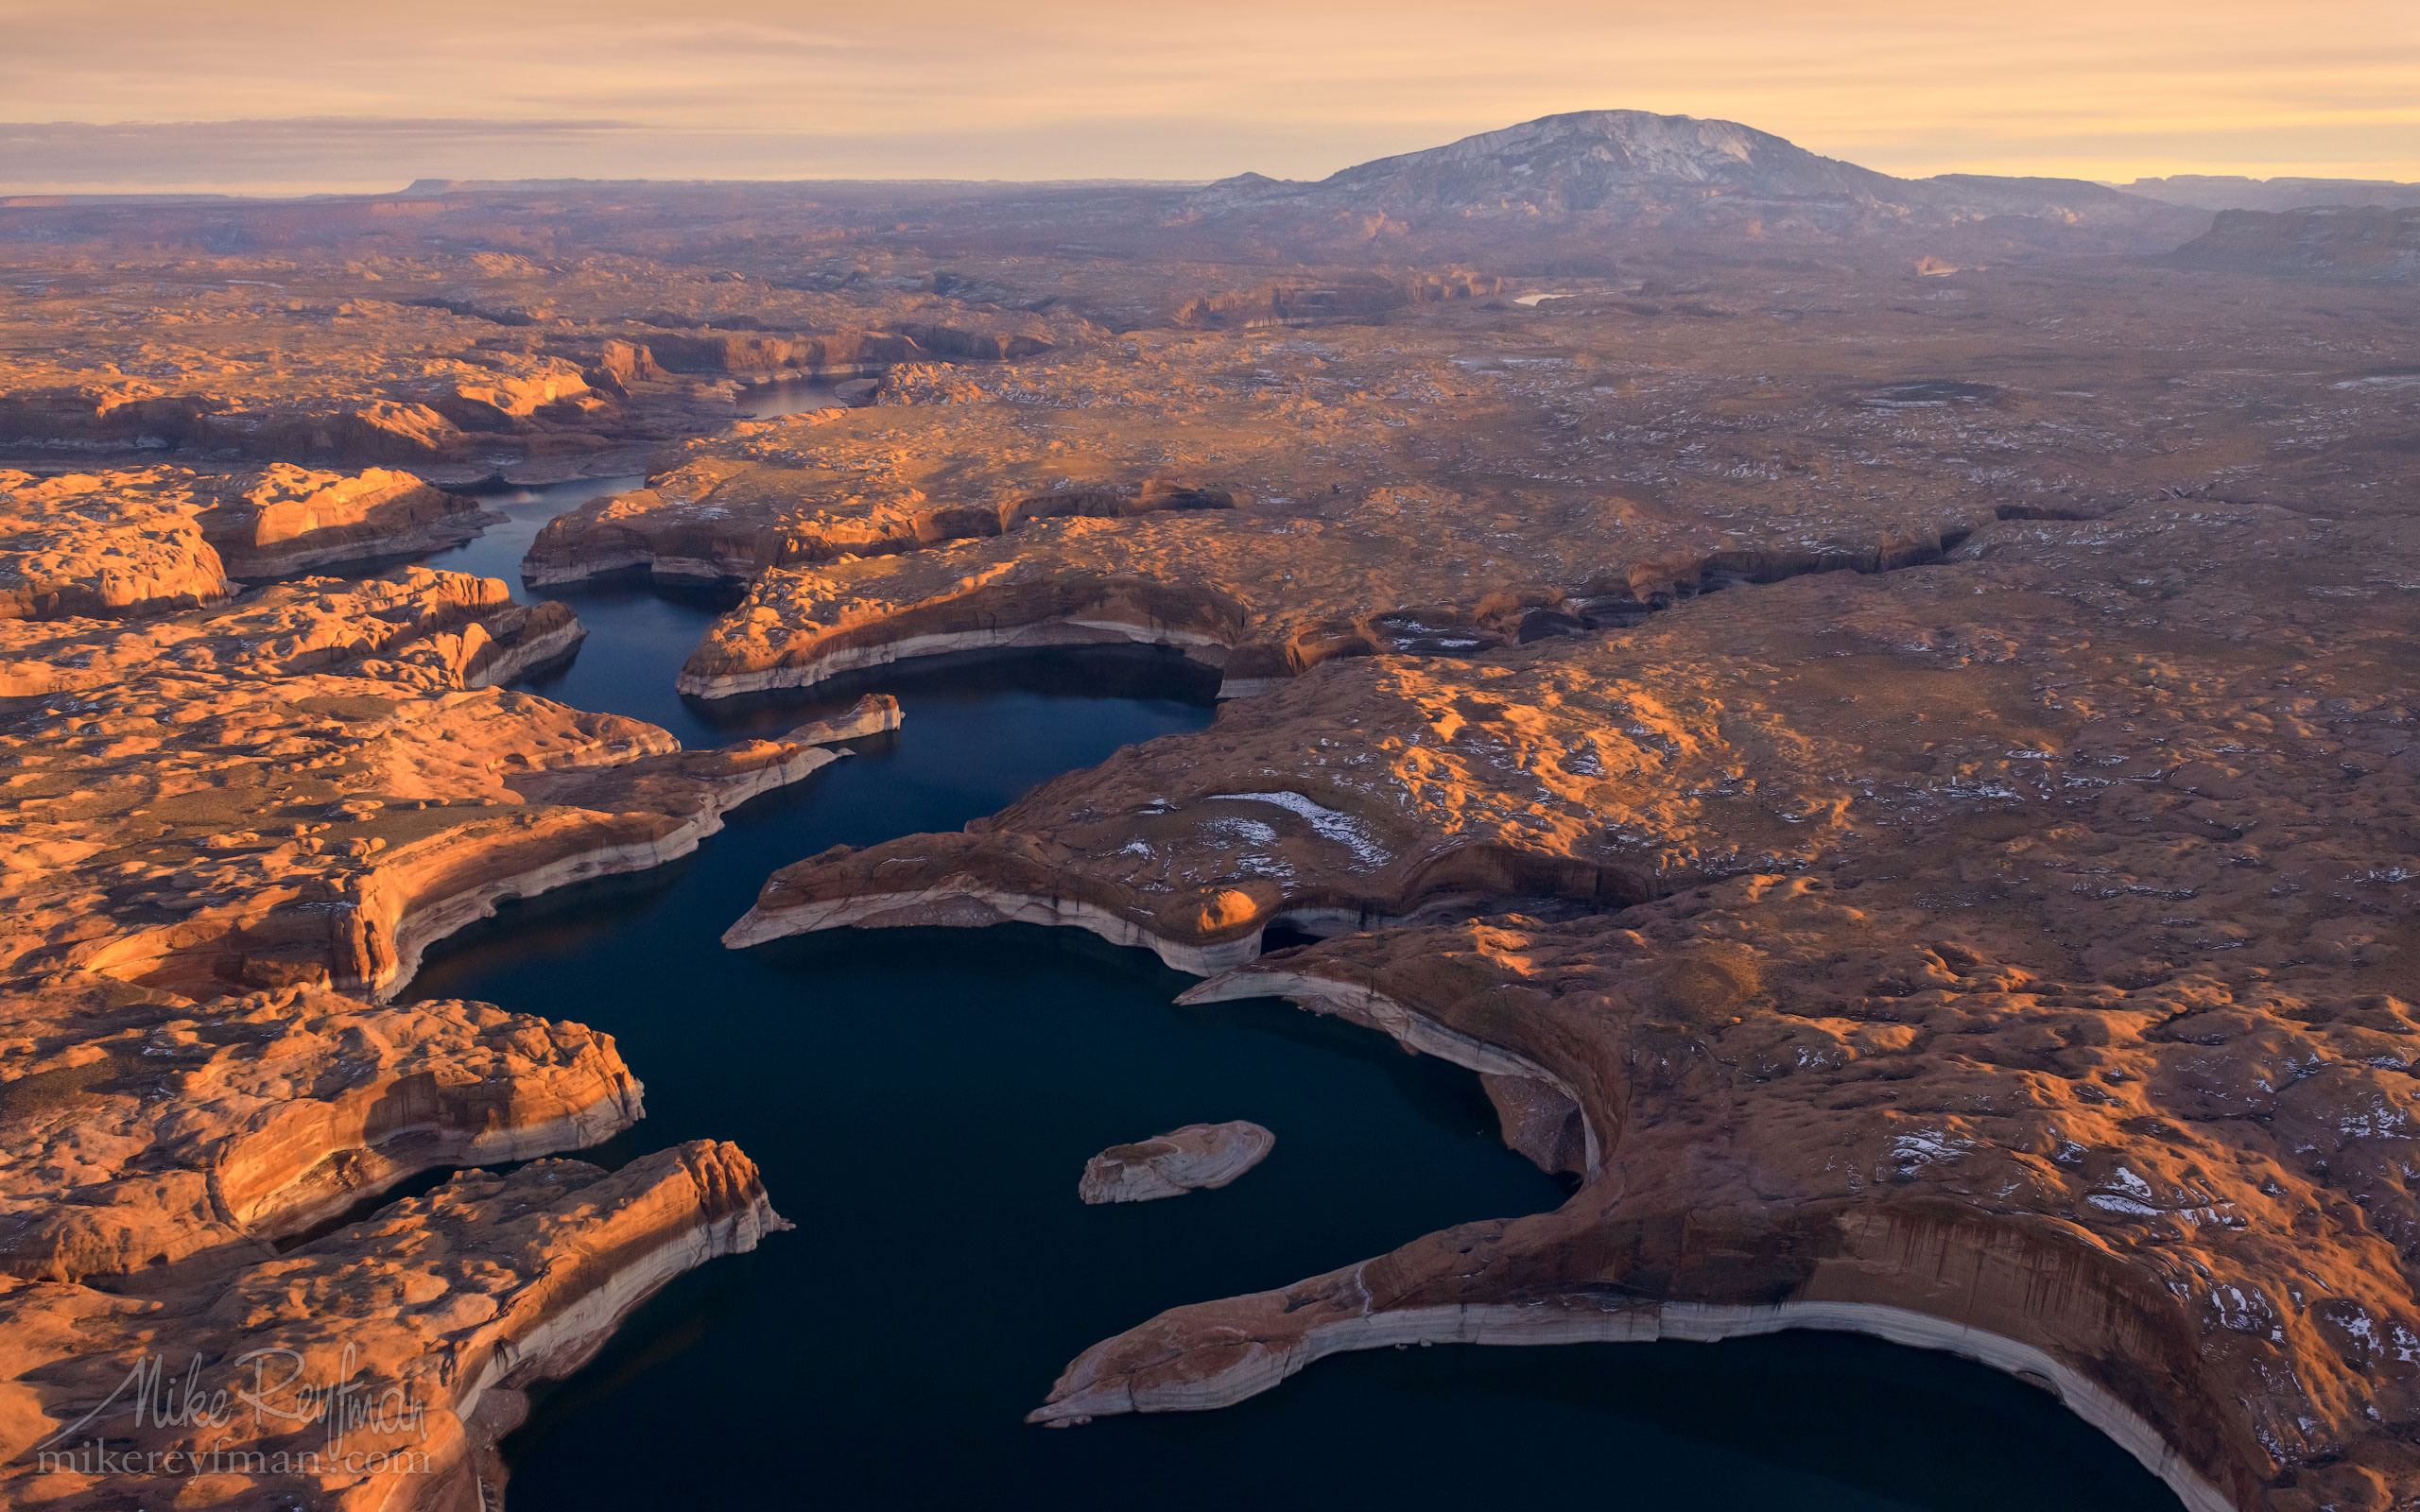 Escalante River Canyon and Navajo Mountain. Lake Powell, Glen Canyon NRA. Uta/Arizona, USA. Aerial. 113-LP3_D8C9600_Escalante-River-Canyon.jpg - Lake Powell, Glen Canyon NAR. Colorado and Sun Juan Rivers. Utah/Arizona, USA  - Mike Reyfman Photography